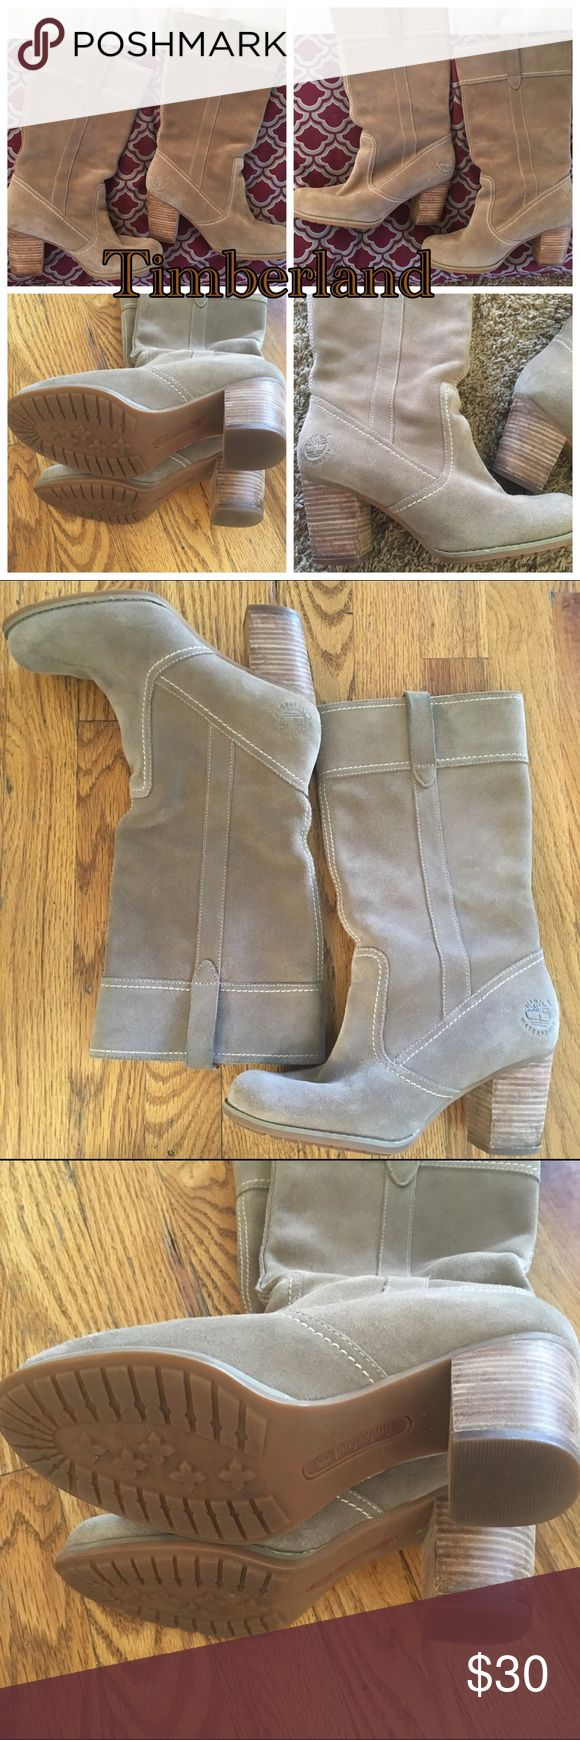 Suede Timberland  waterproof boots with heel Tan waterproof suede Timberlain boots with Heel  good used condition has some minor wear price reflects and some color transfer on the pull straps of the boots no longer can wear heels due to nerve damage. Timberland Shoes Winter & Rain Boots